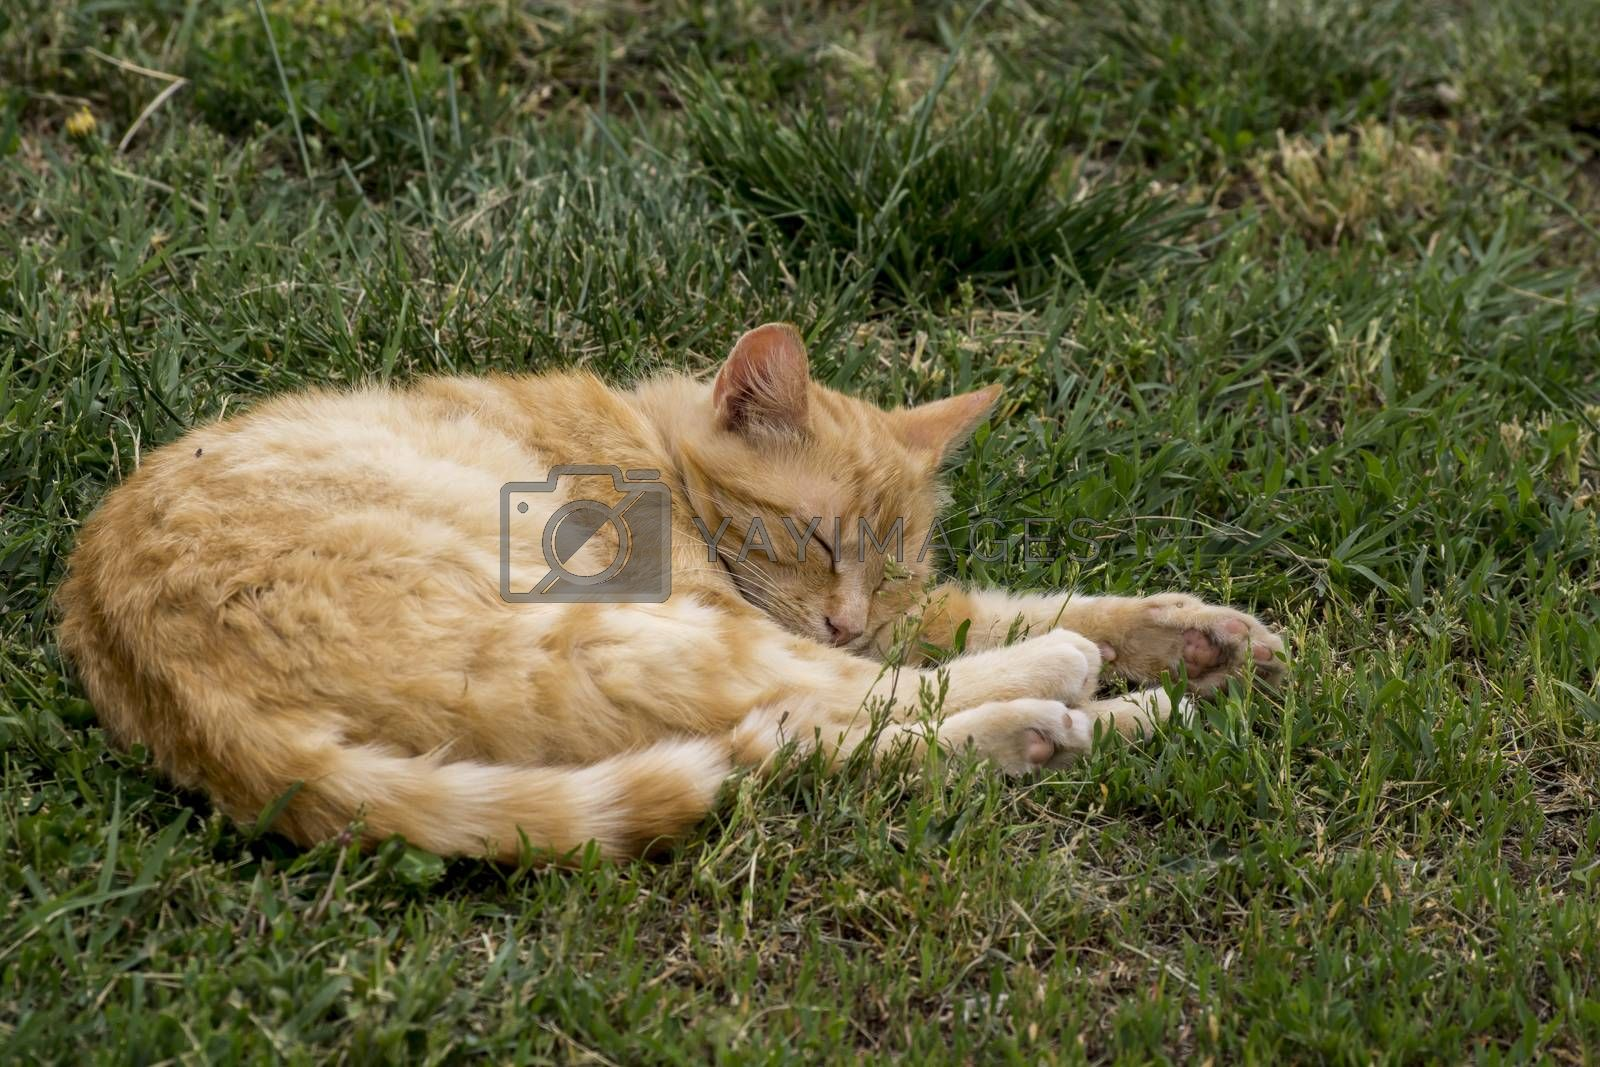 The lazy cat sleeping in the garden.